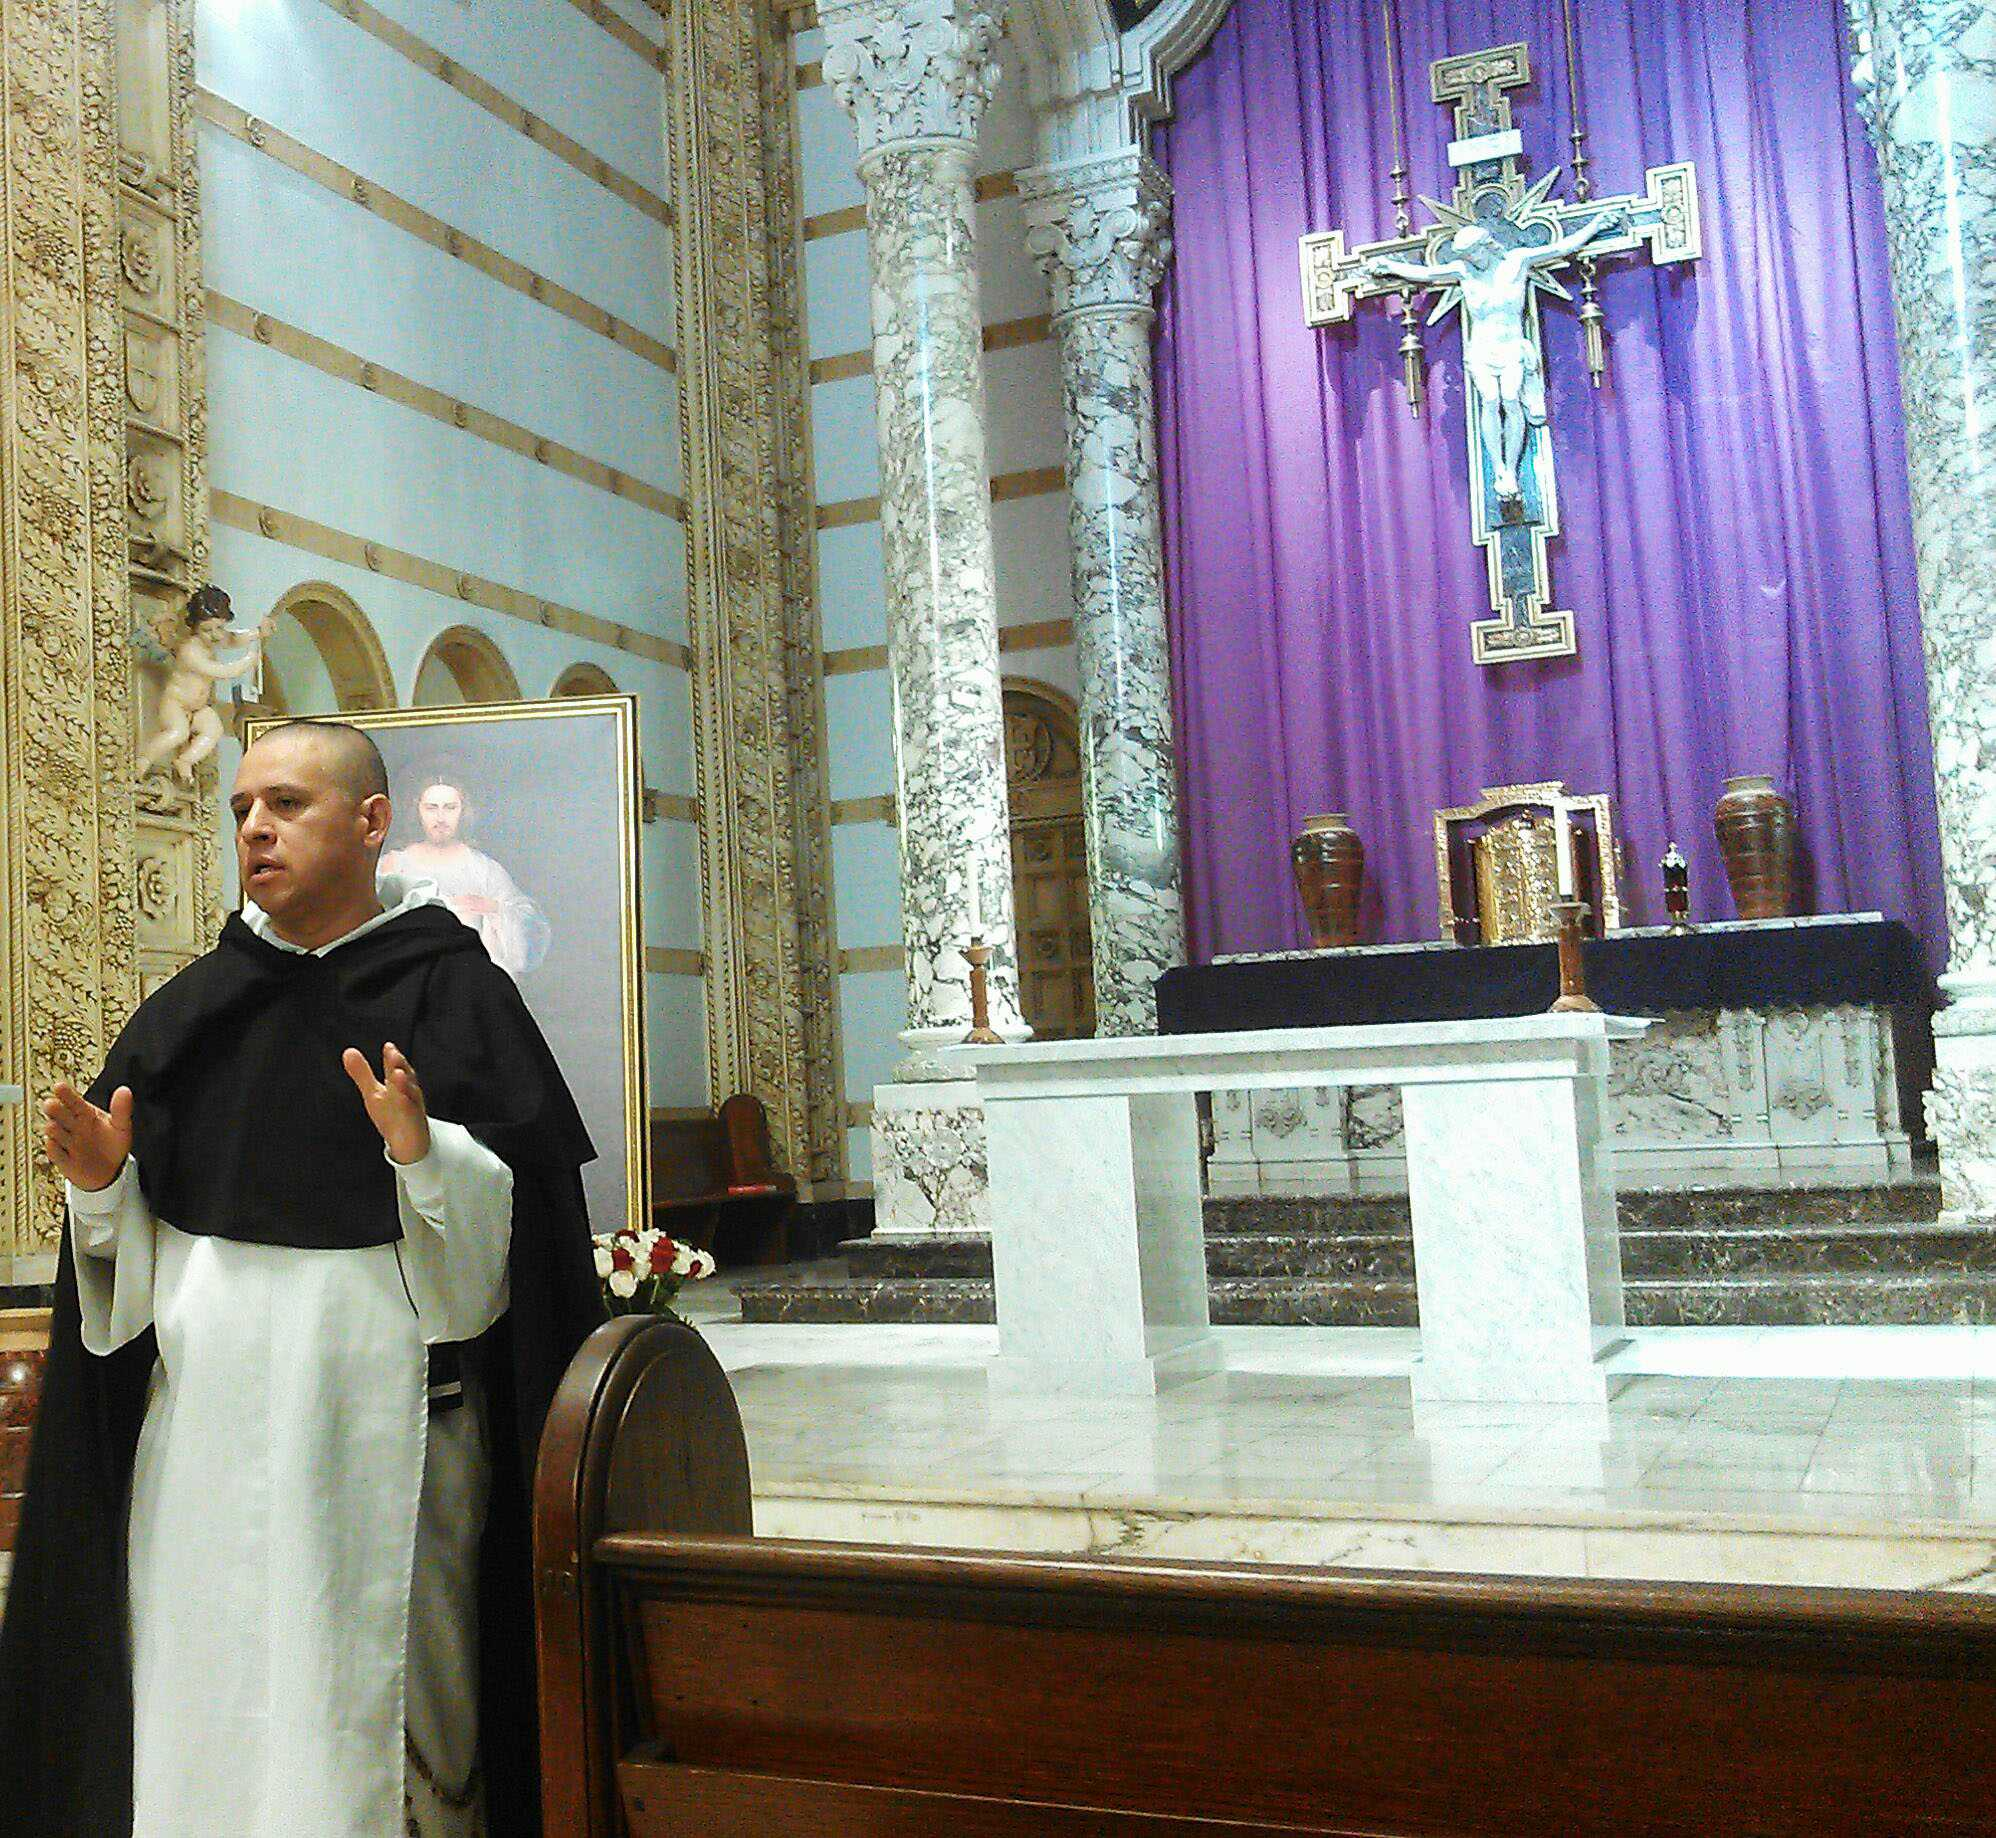 The Rev. Mariano Veliz shares his experience with God's mercy in his life at St. Anthony of Padua Church. He said God gave him the strength to his forgive his parents' decision making. Photo credit: Jamal Melancon